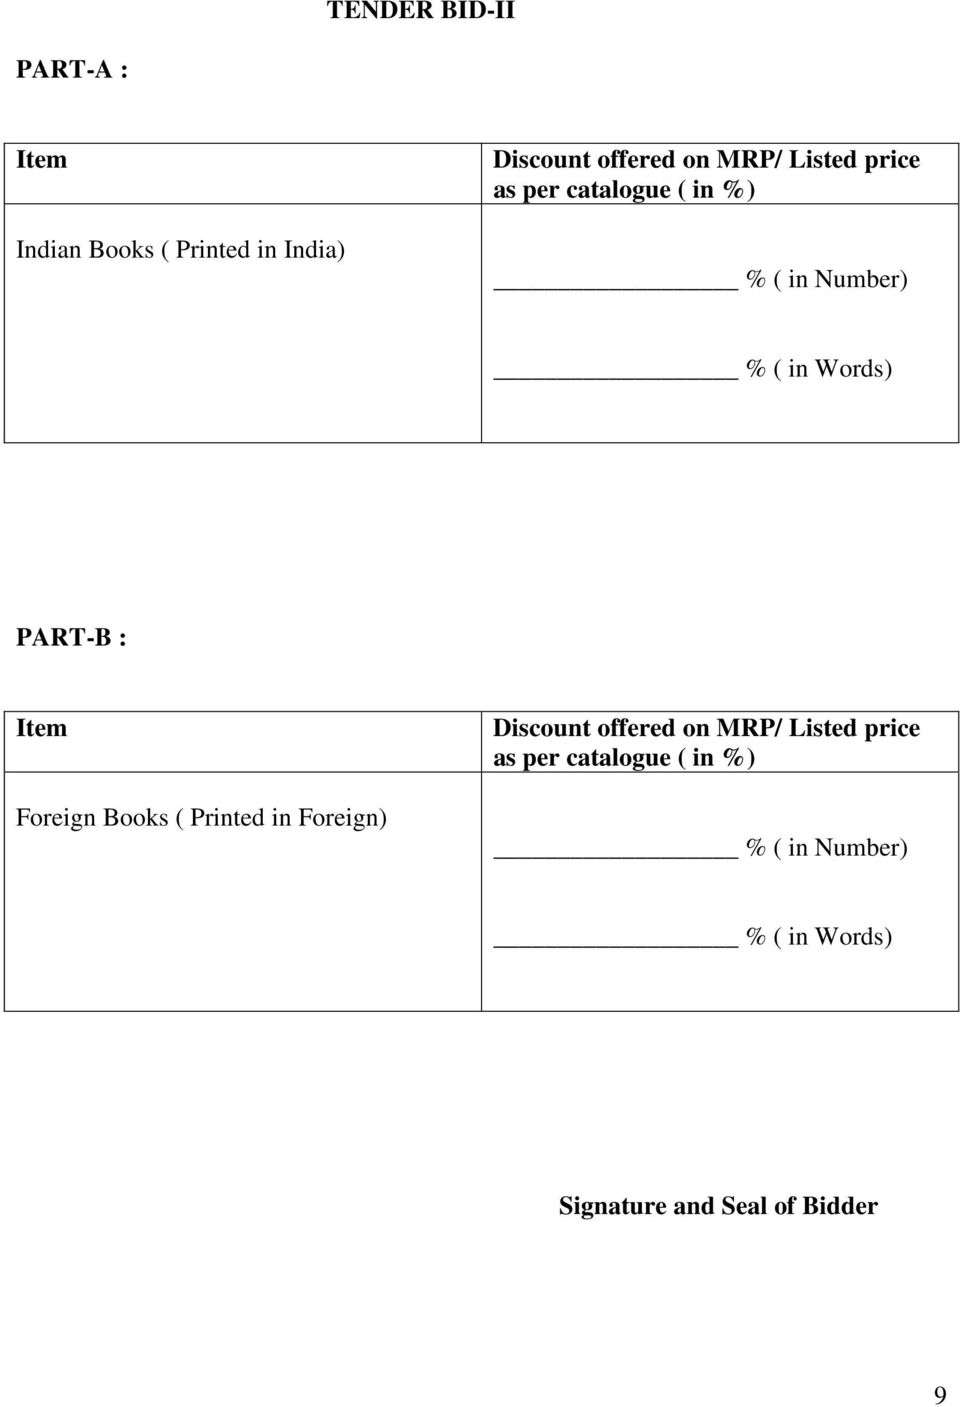 Item Foreign Books ( Printed in Foreign) Discount offered on MRP/ Listed price as